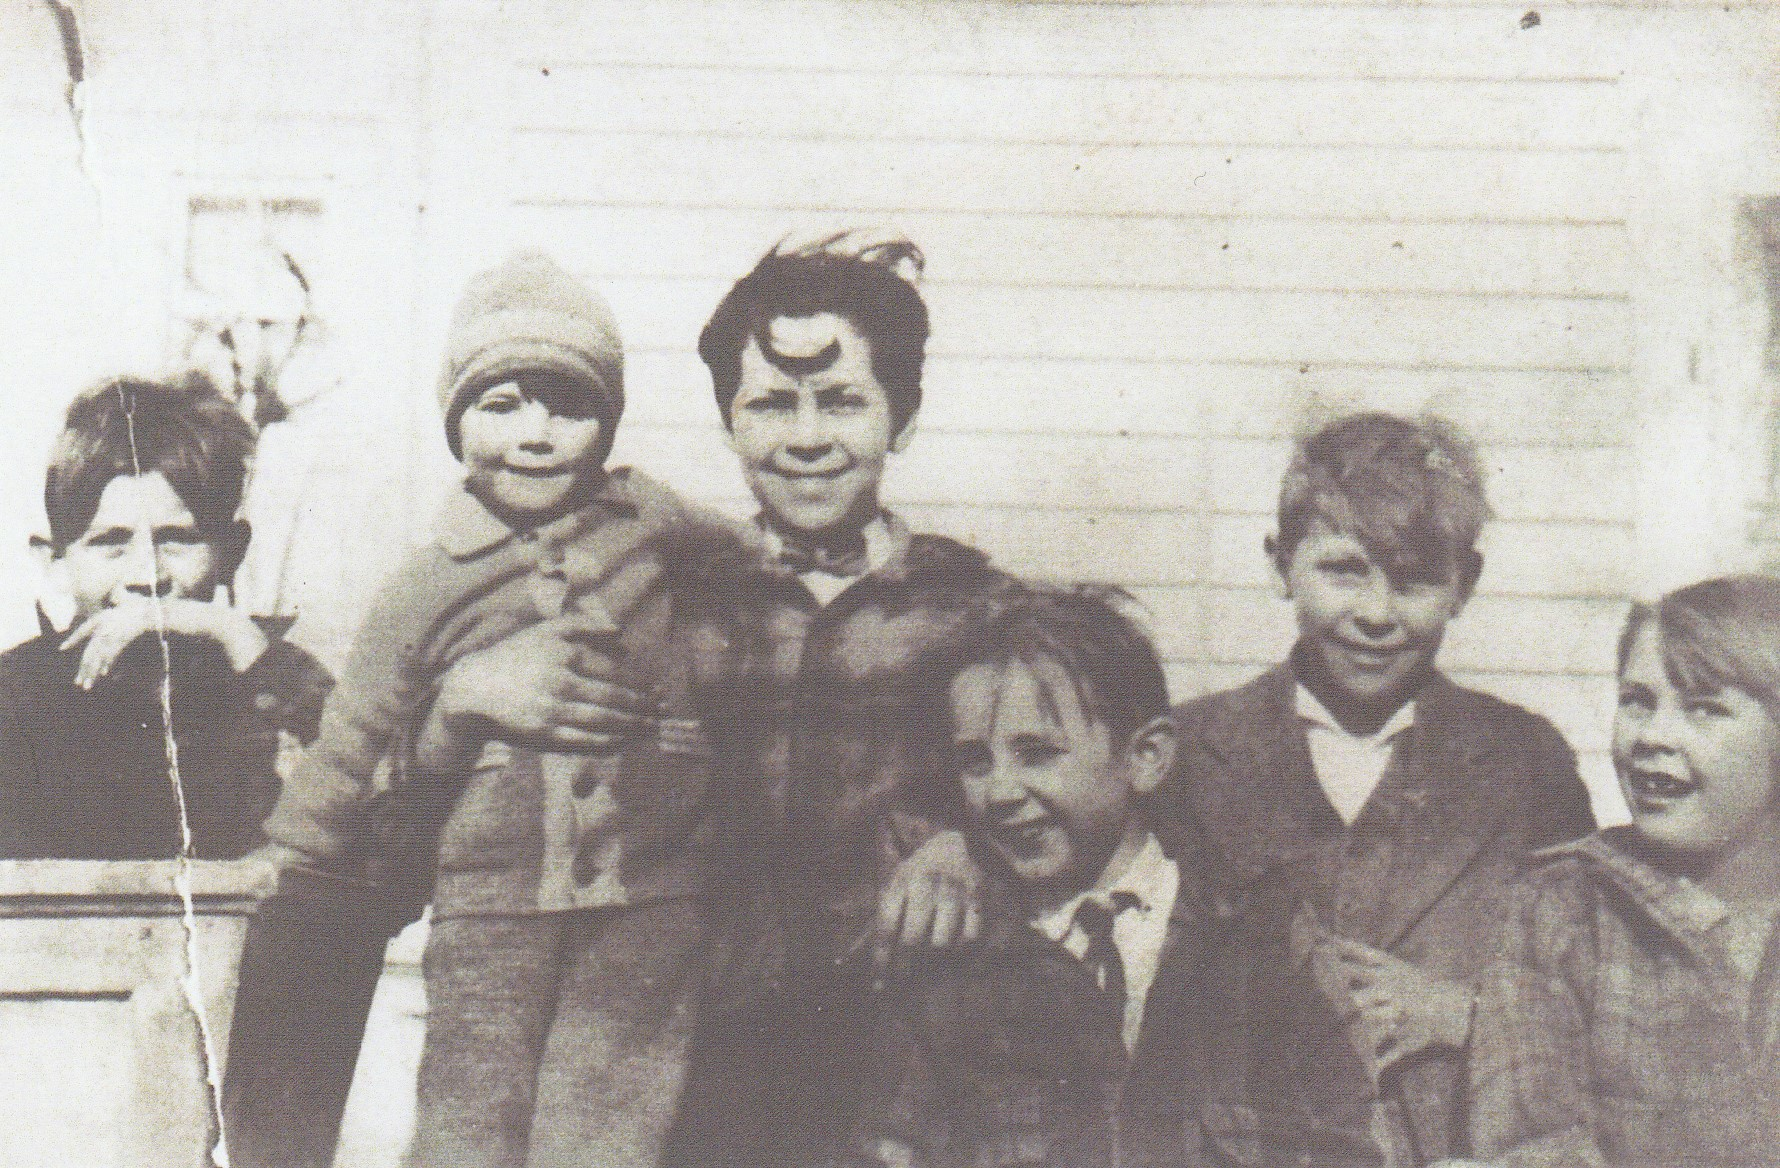 Guion Kids on side porch - @ 1928